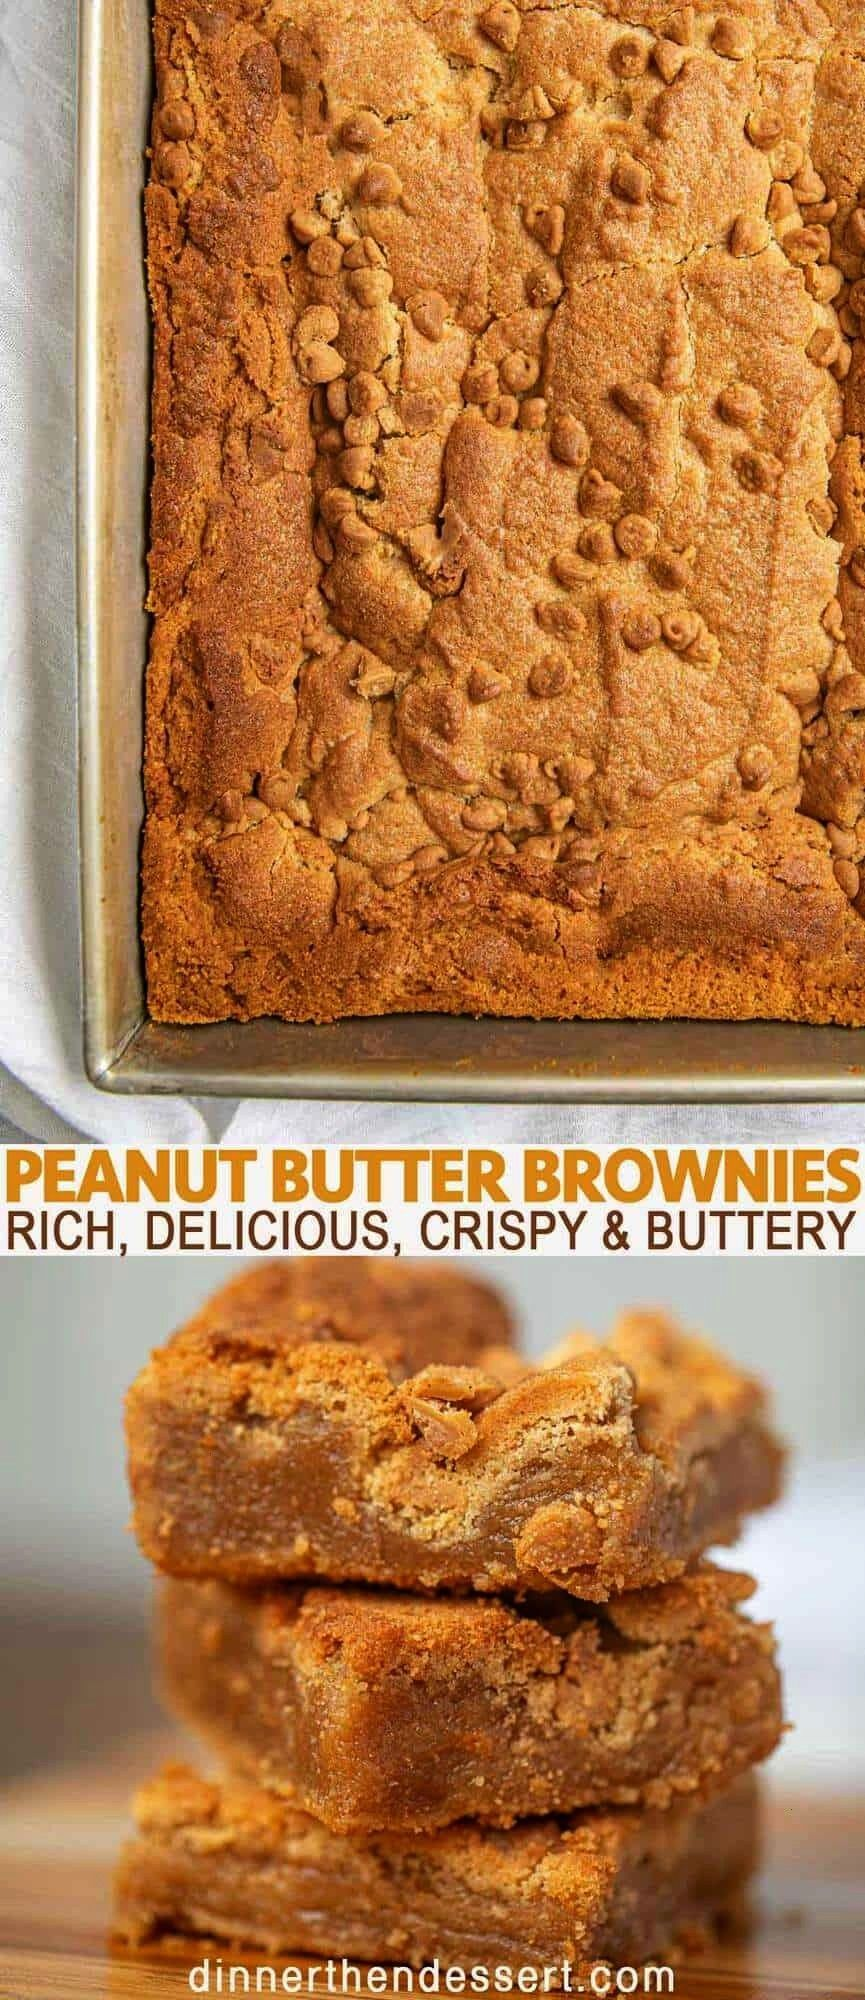 butter brownies are rich, delicious, crispy and buttery brownies with pea... -Peanut butter brownie